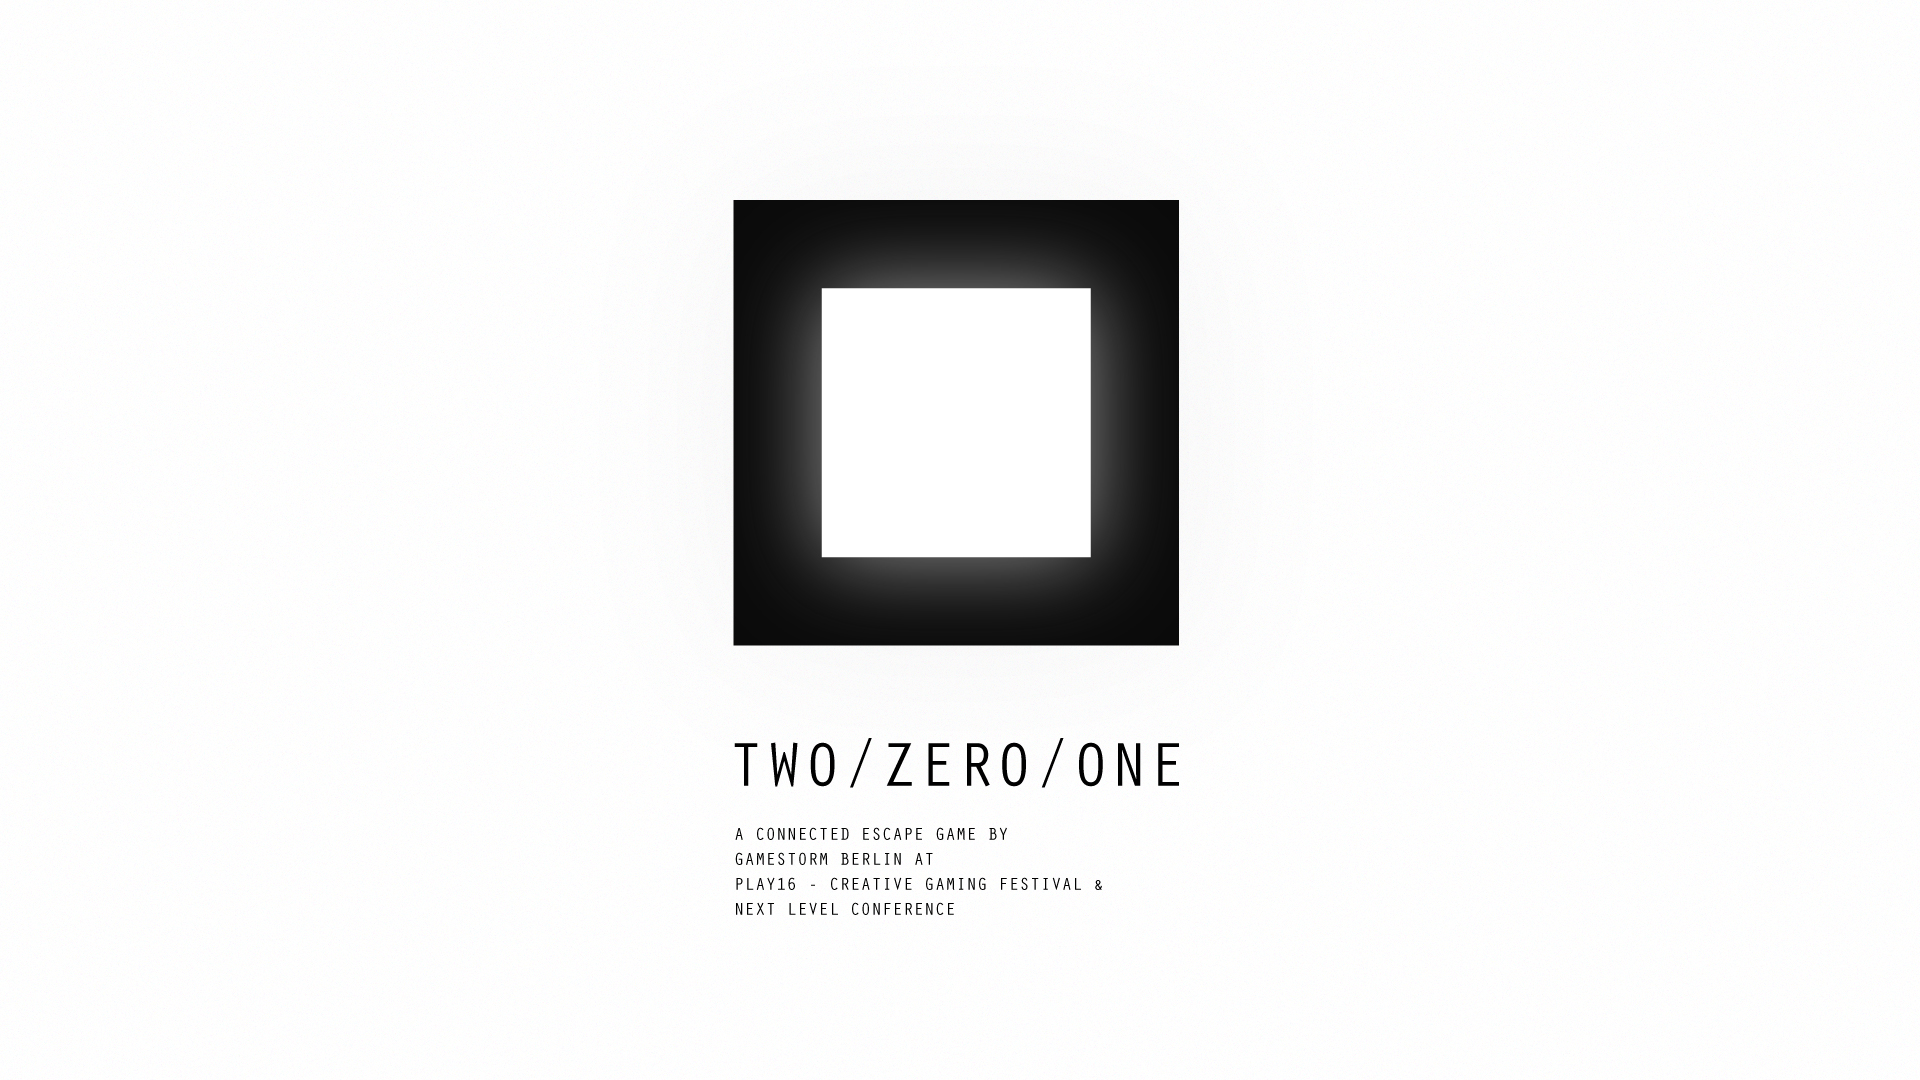 TWO / ZERO / ONE - A connected escape game